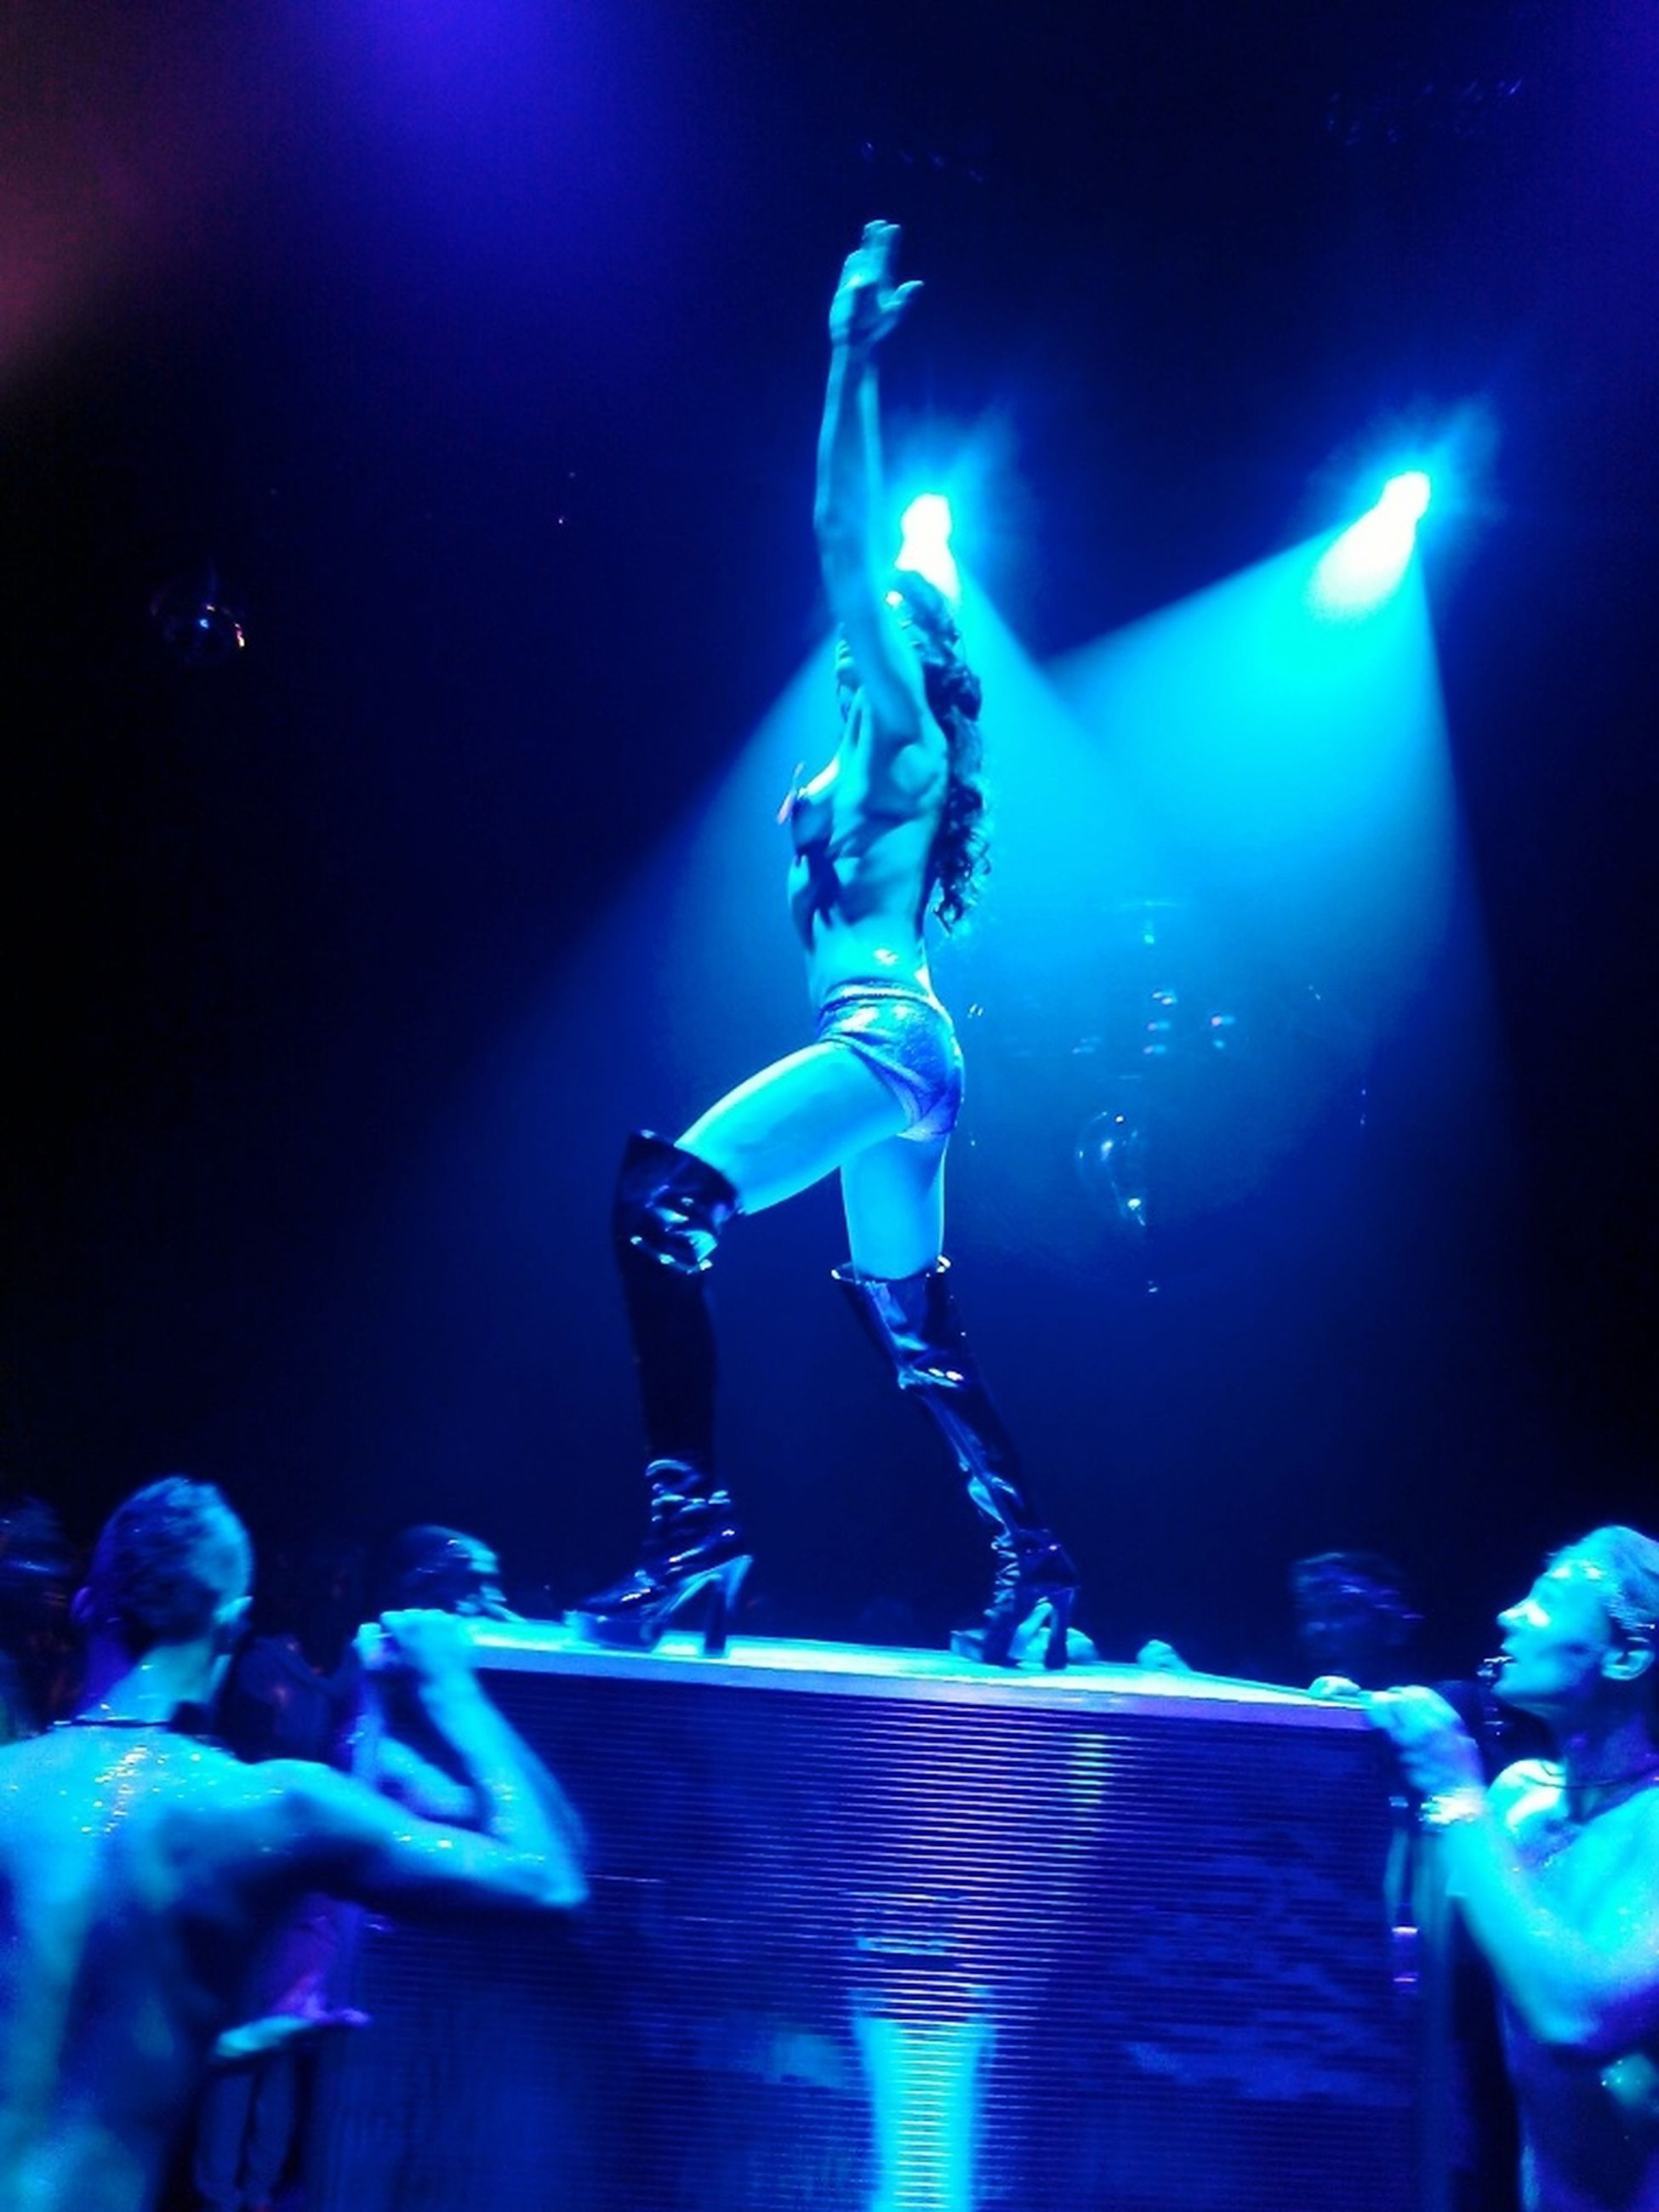 blue, night, men, illuminated, indoors, skill, leisure activity, arts culture and entertainment, lifestyles, occupation, underwater, performance, smoke - physical structure, music, motion, musical instrument, water, fire - natural phenomenon